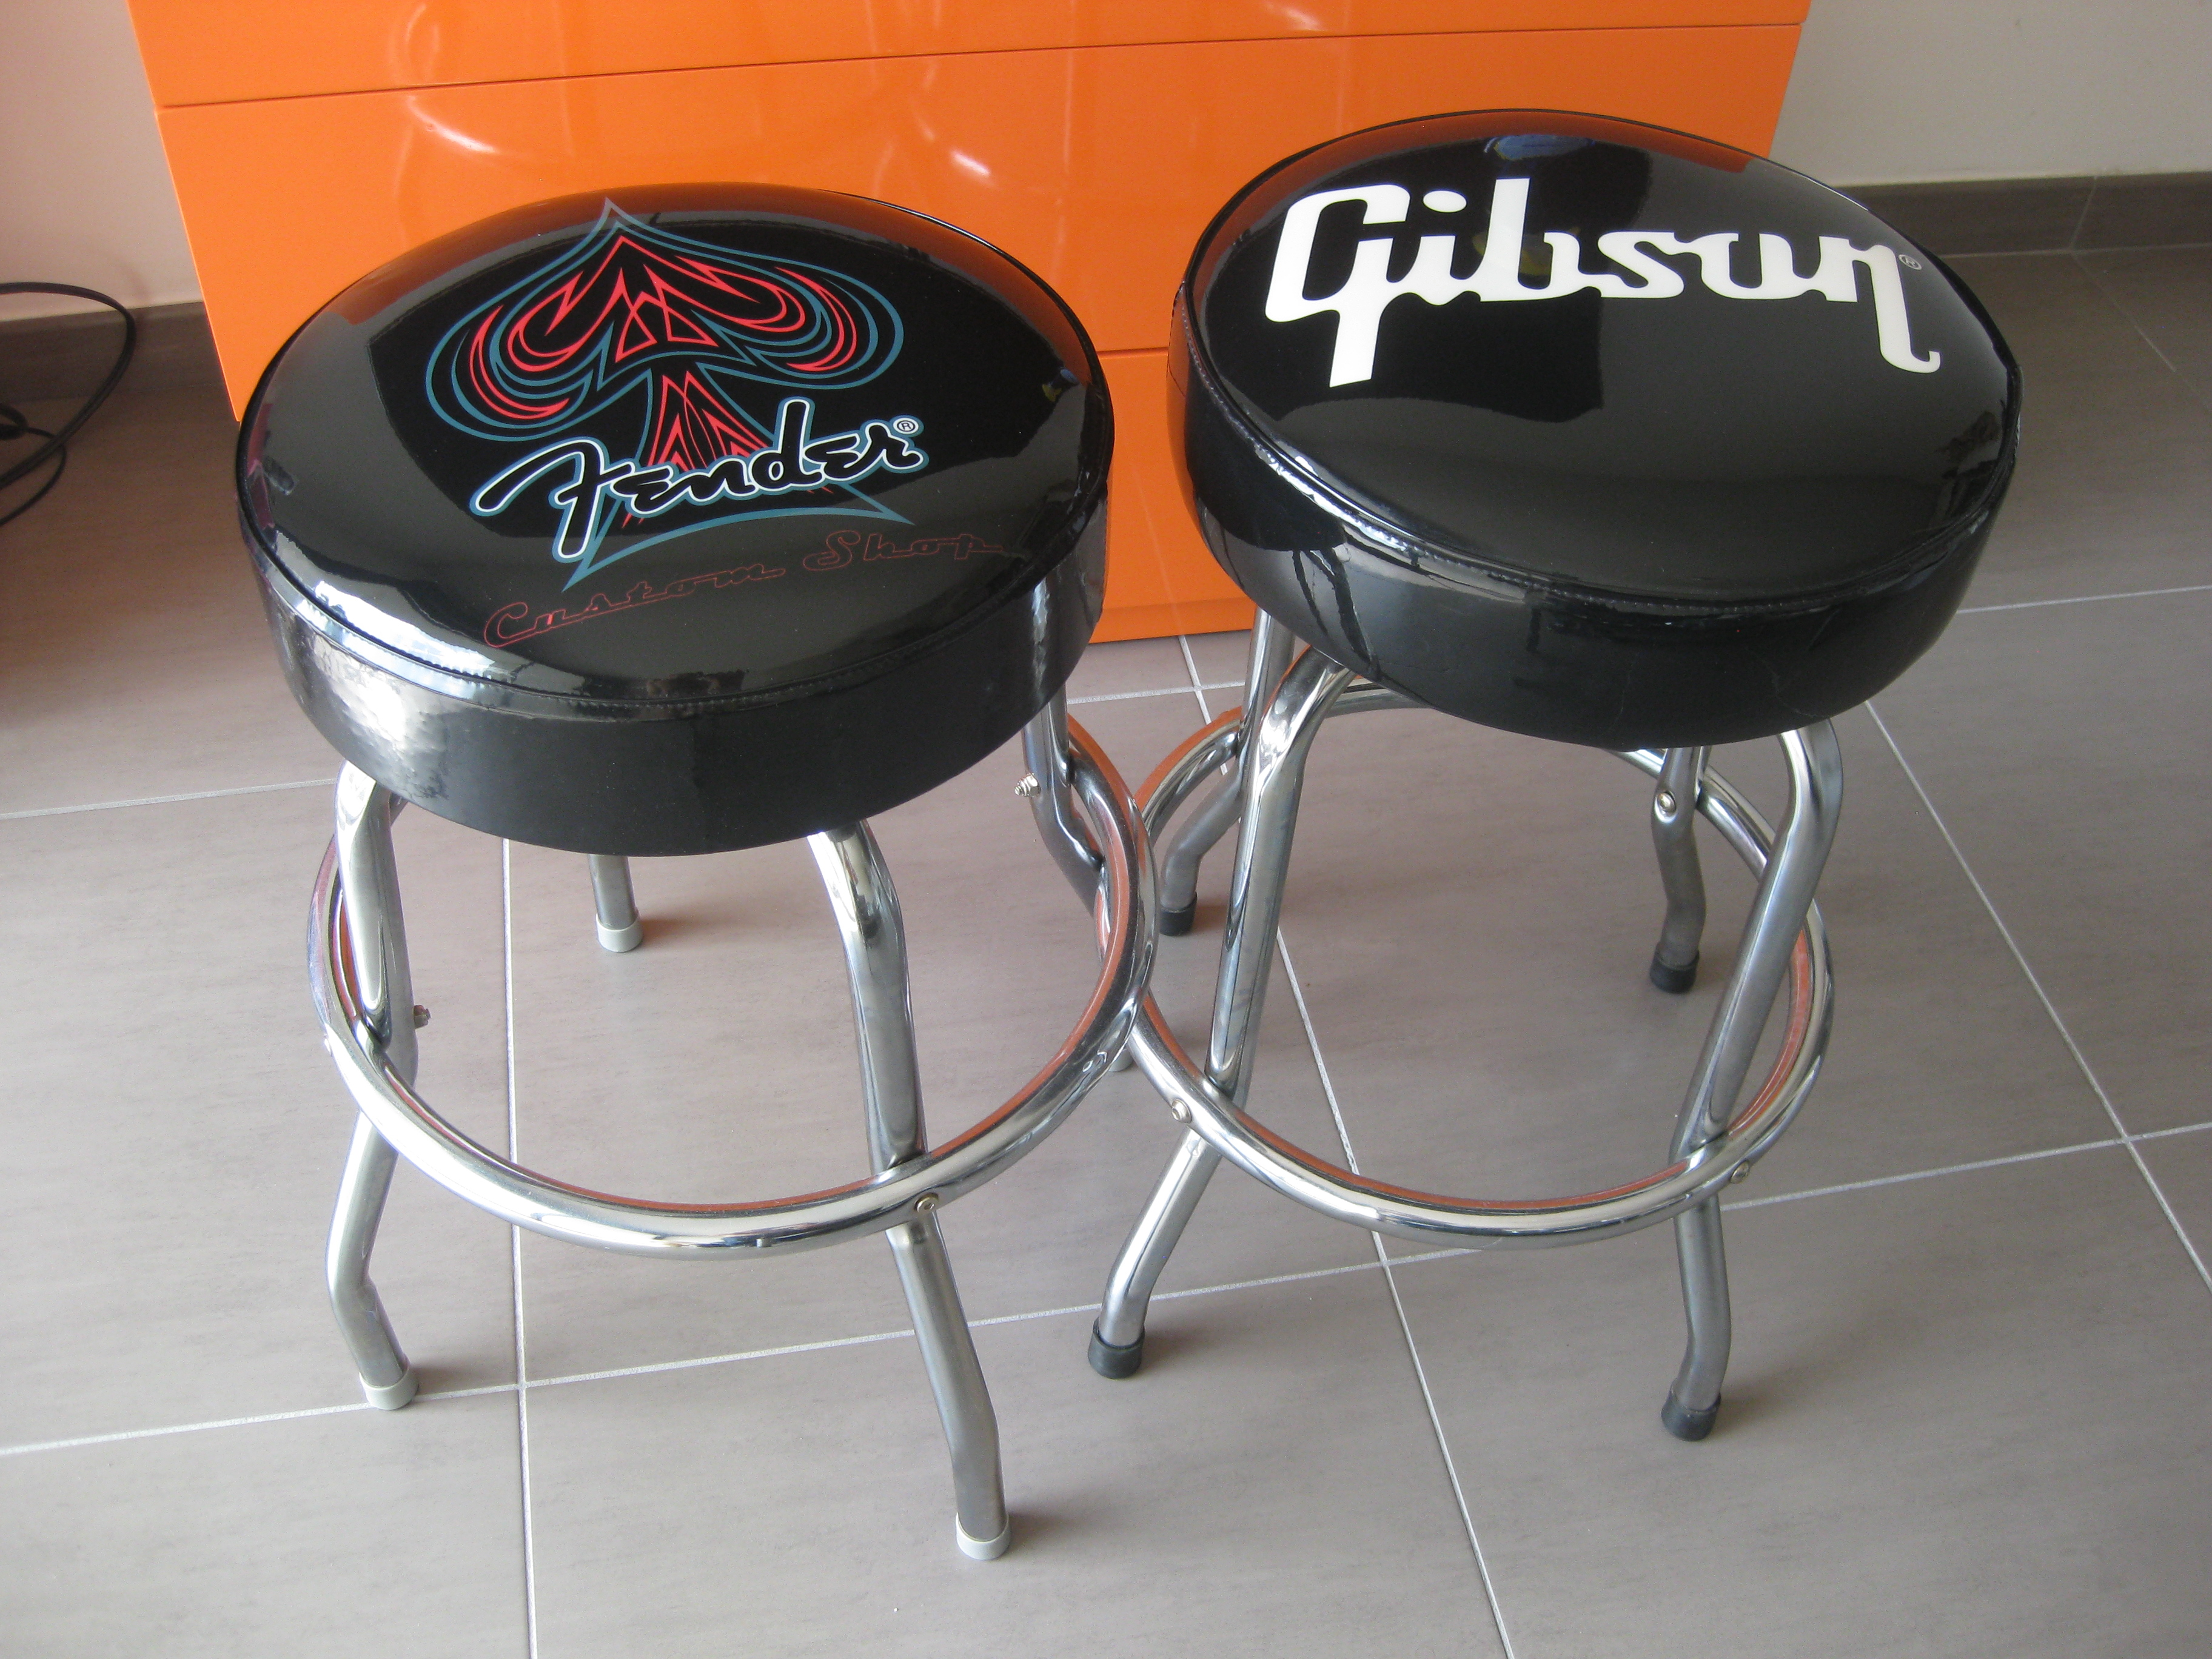 Gibson Bar Stool Image 922692 Audiofanzine